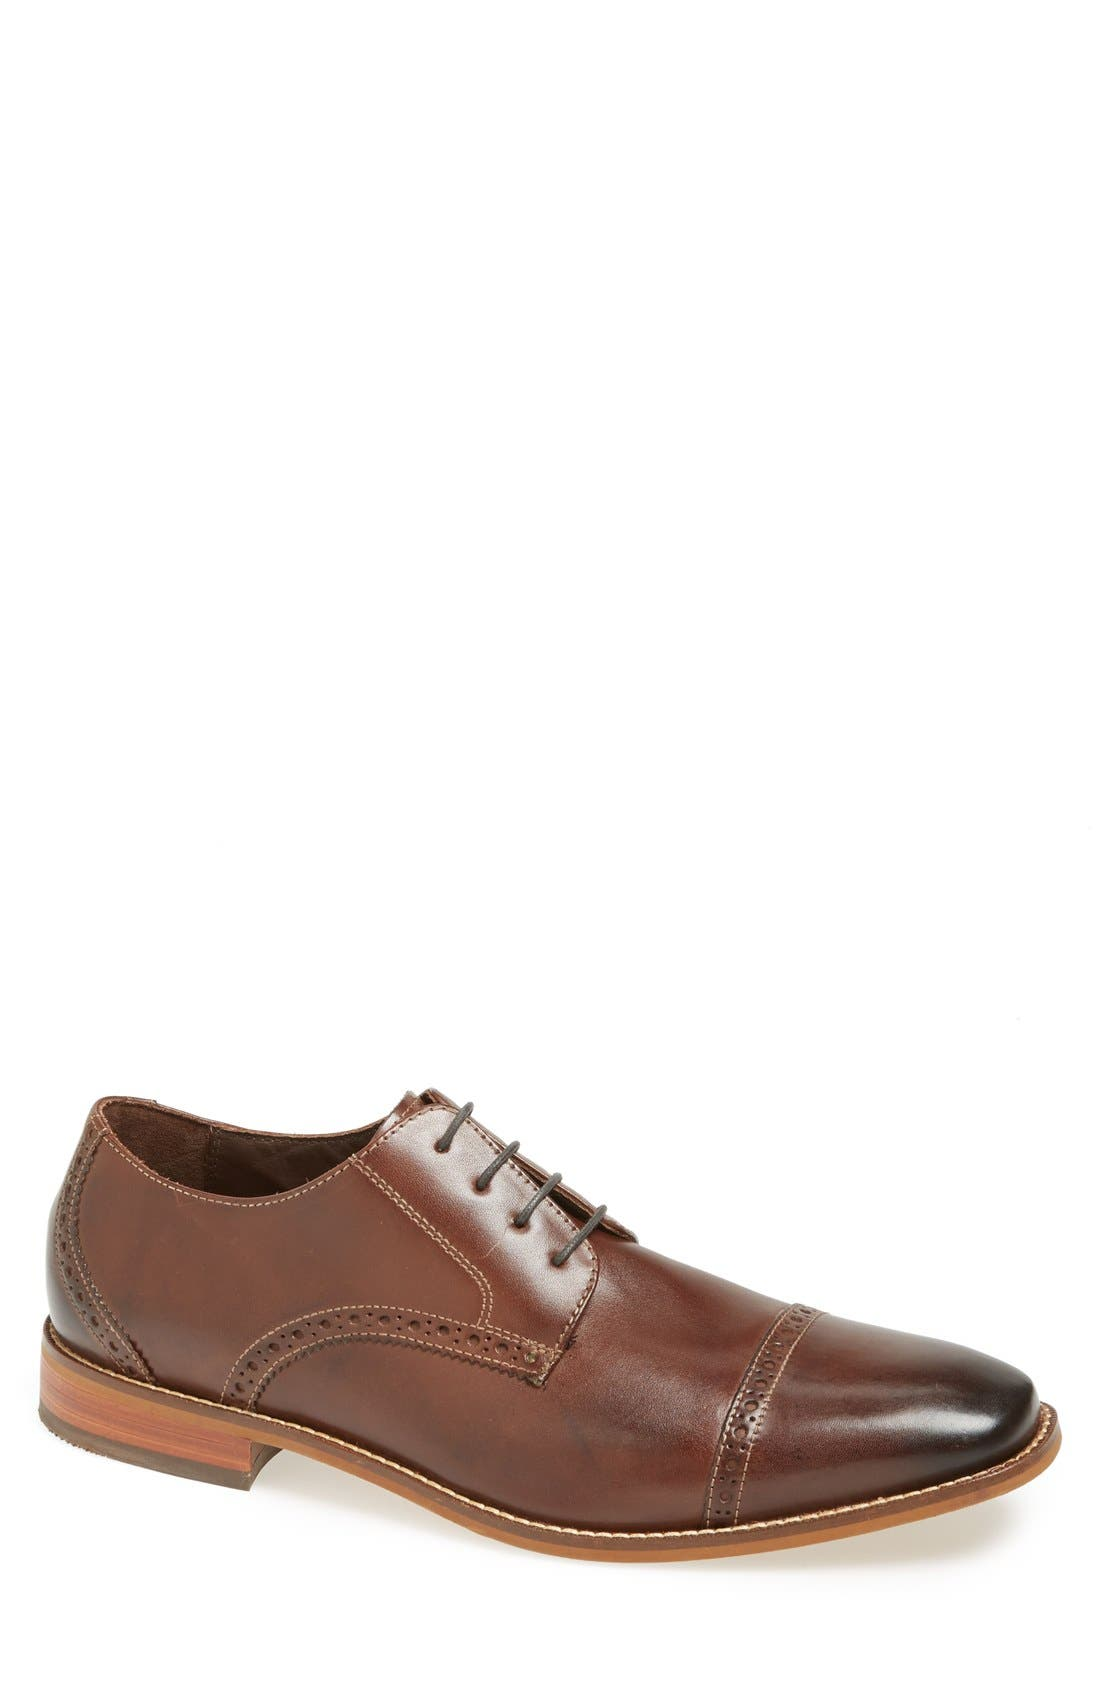 Alternate Image 1 Selected - Florsheim 'Castellano' Cap Toe Derby (Men)